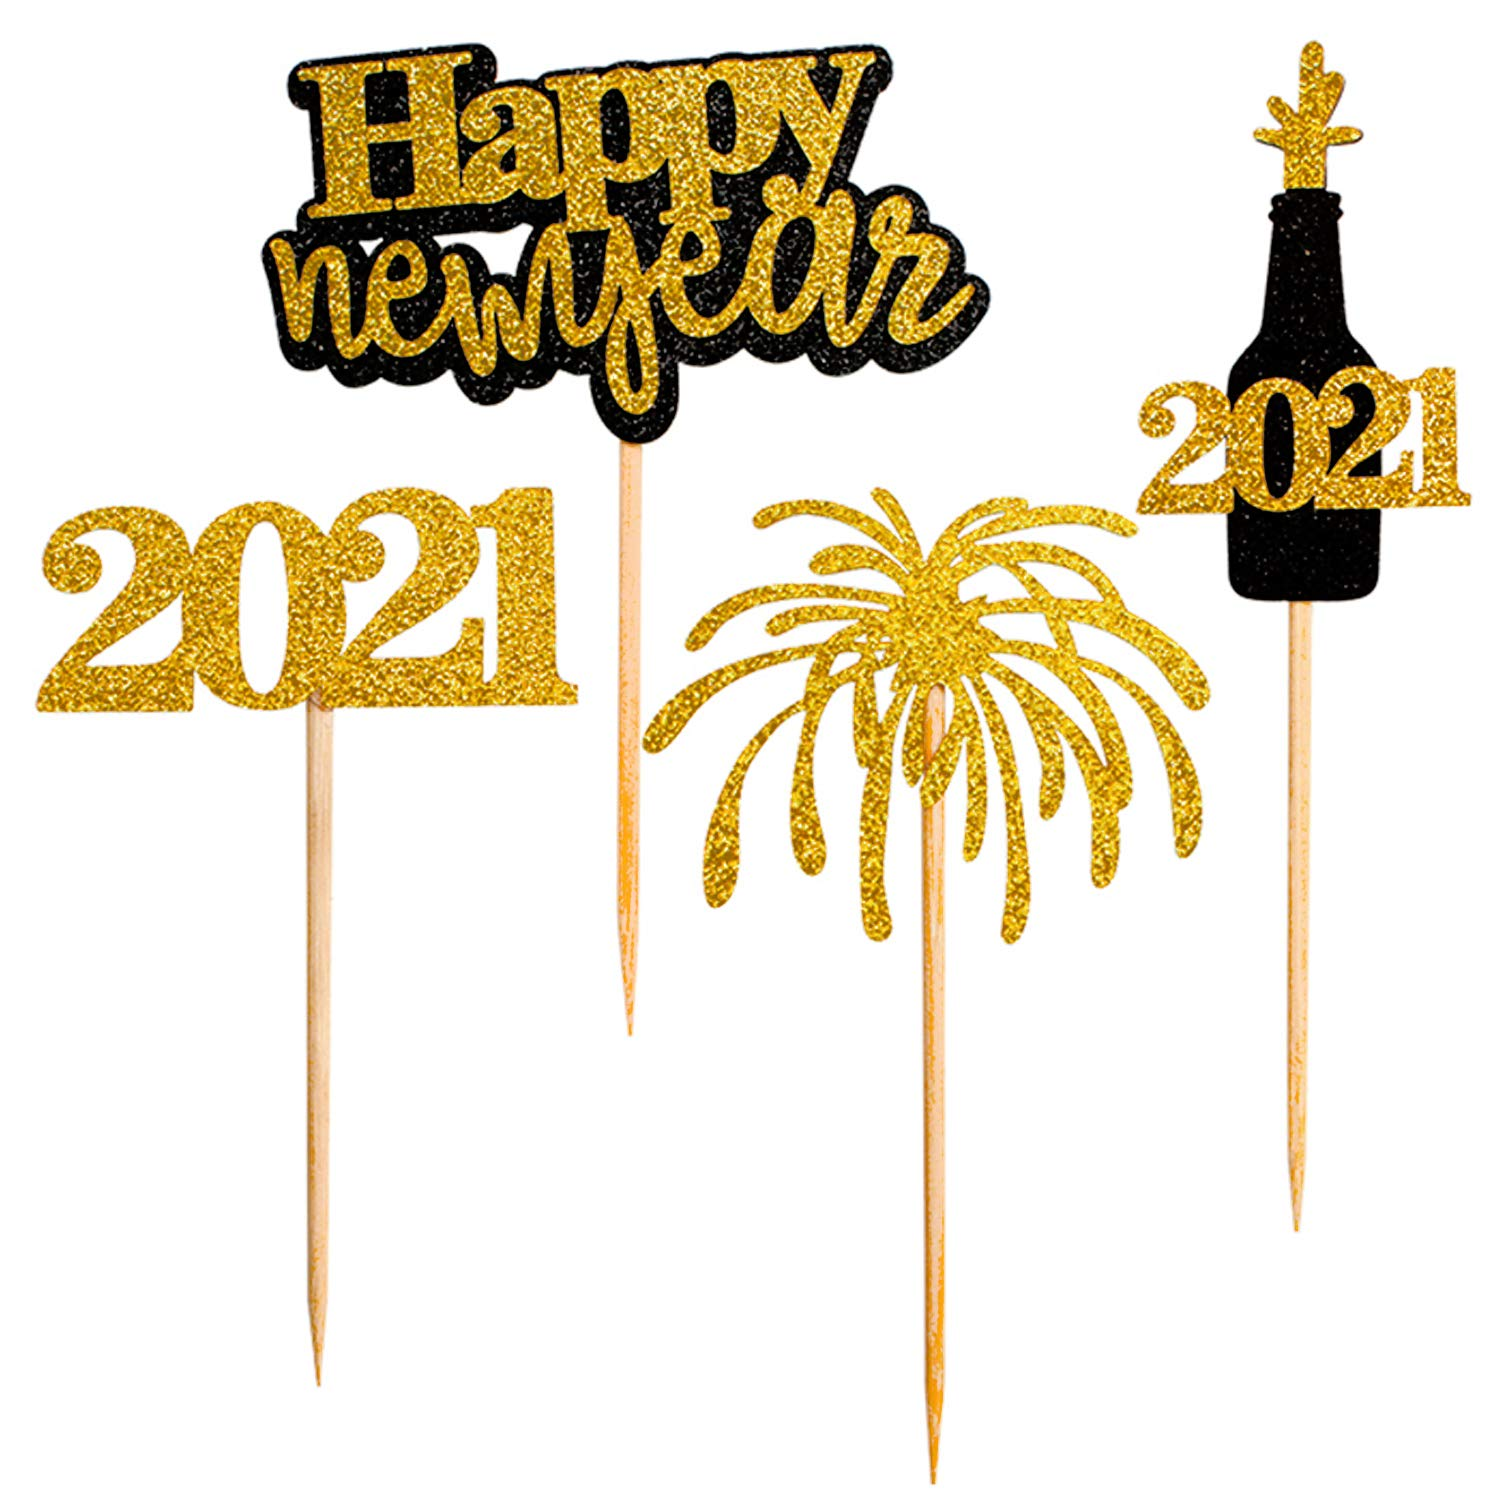 24 PCS Happy New Year Cupcake Toppers ,New Year's Eve Decoration 2021,Picks Muffin Cake Toppers for Party Table Cake Decorations New Year Party Supplies